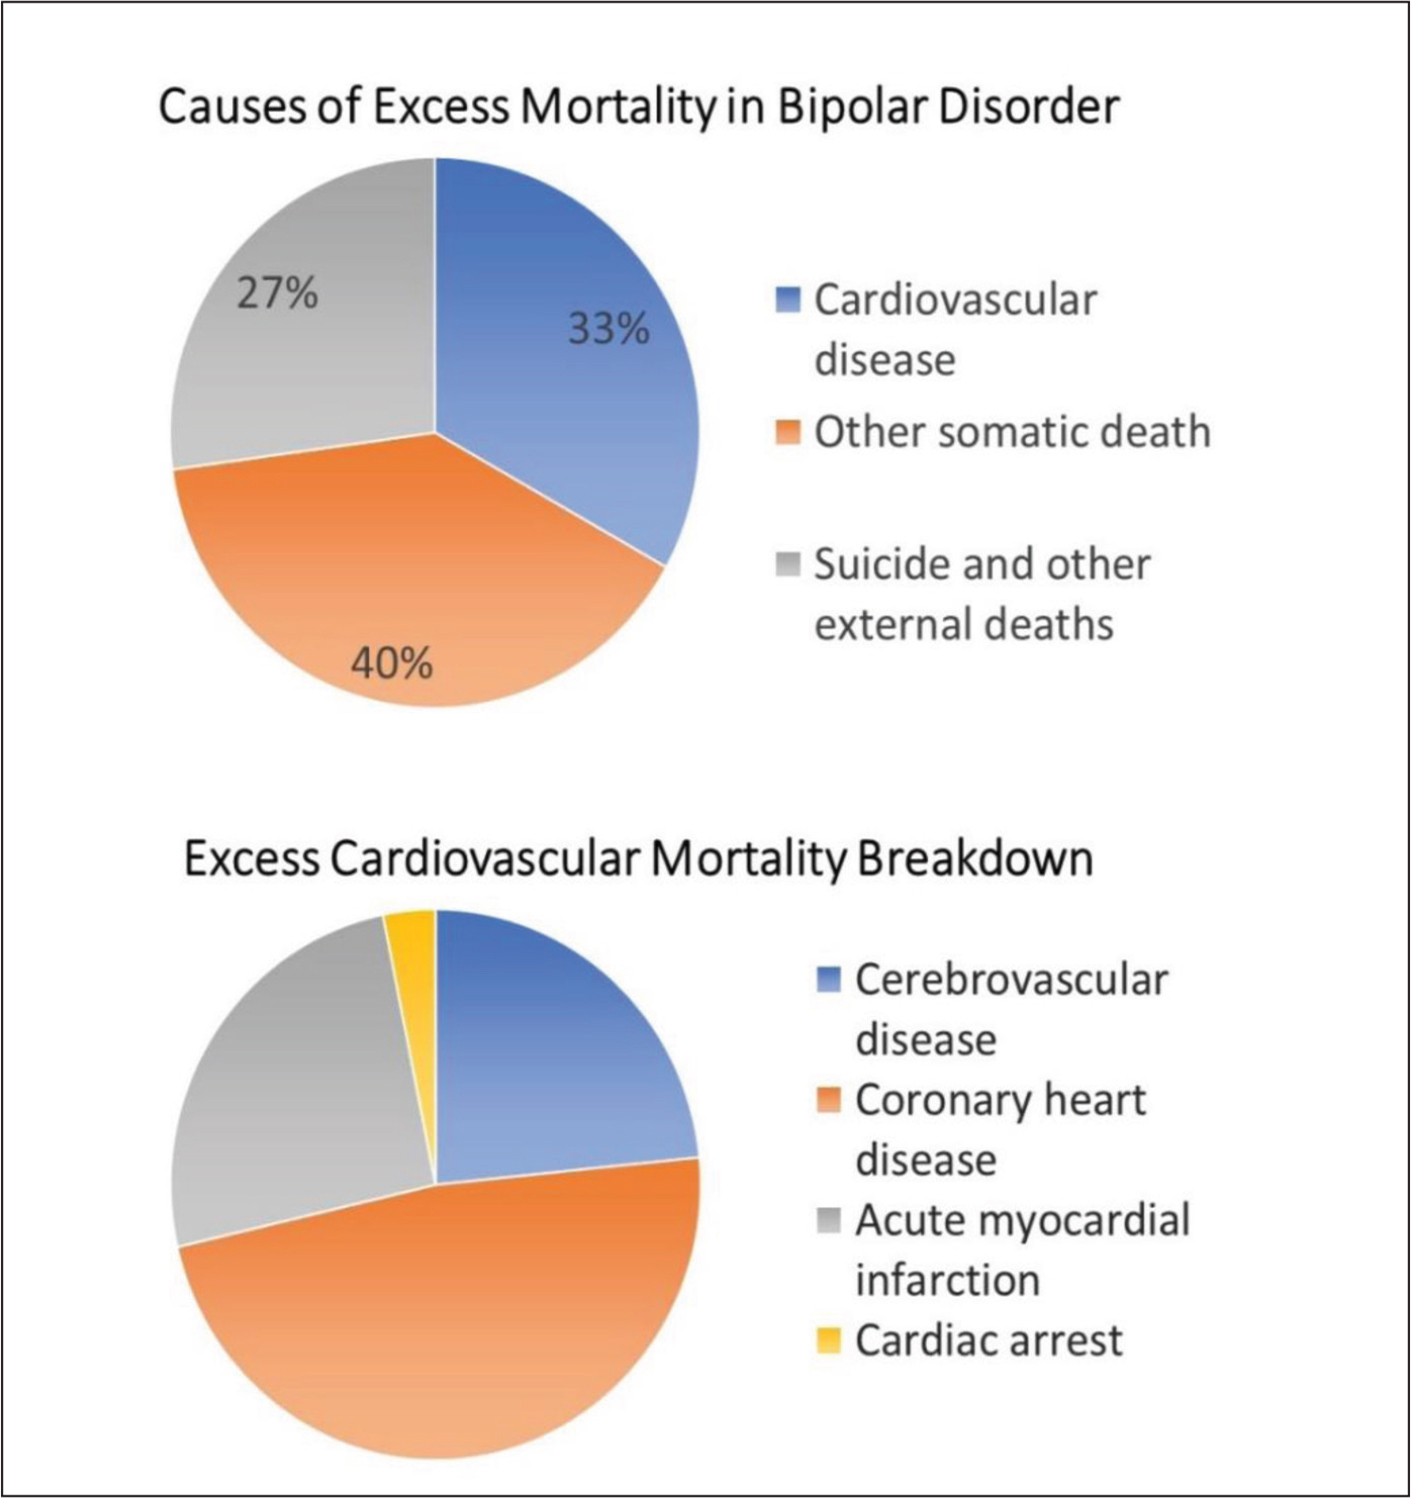 This figure summarizes the excess mortality observed in a population-based sample in Sweden that included 17,101 people with bipolar disorder and also included 20 years of follow-up. Cardiovascular diseases contributed to approximately one-third of the excess deaths observed; the mortality rate ratio for cardiovascular disease was 2.03 (95% confidence interval 1.93–2.13). Nearly one-half of the cardiovascular mortality was due to coronary heart disease with the bulk of the remaining due to acute myocardial infarction and cerebrovascular disease. Adapted from Westman et al.5